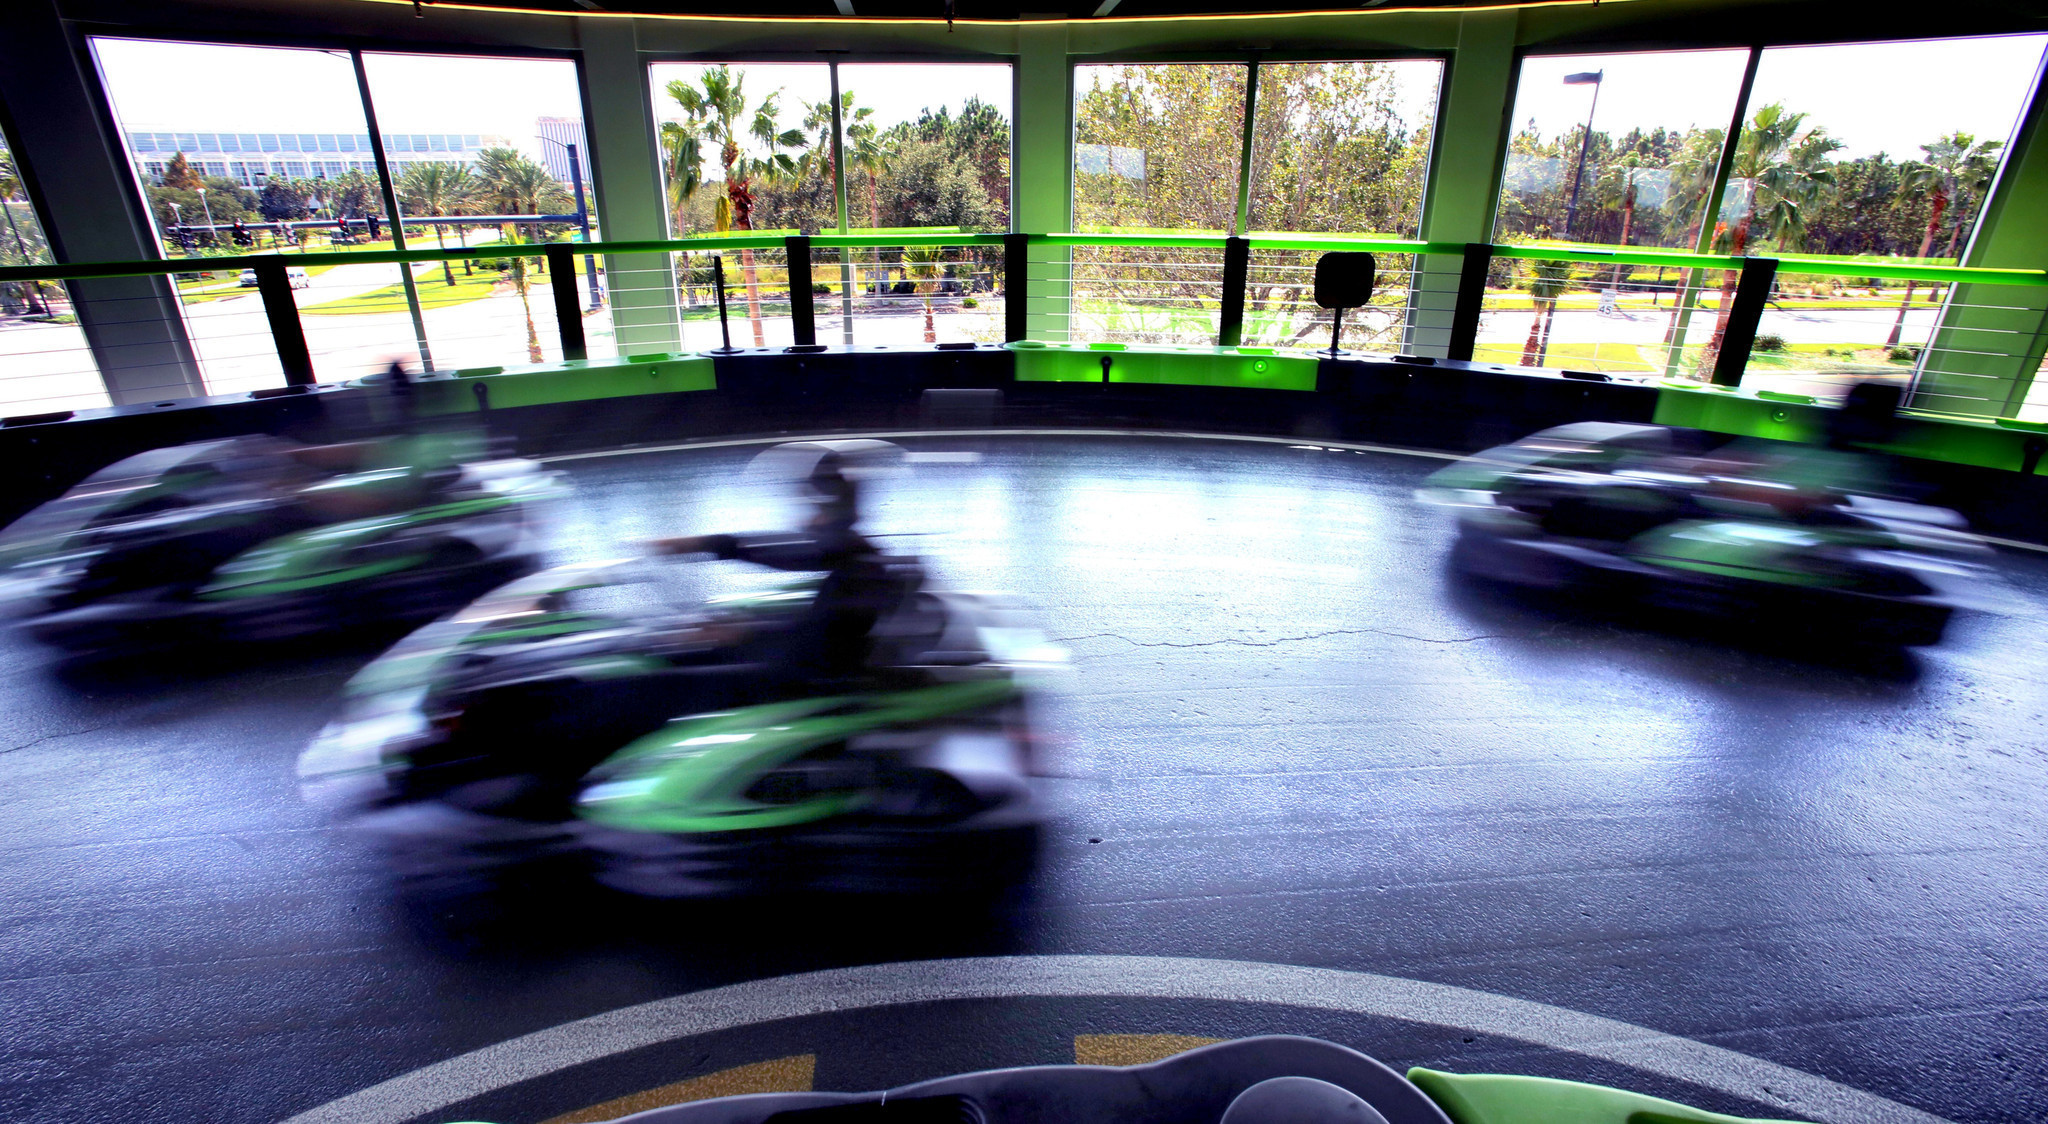 Electric Go Kart >> Andretti Indoor Karting brings electric jolt to Orlando's I-Drive - Orlando Sentinel